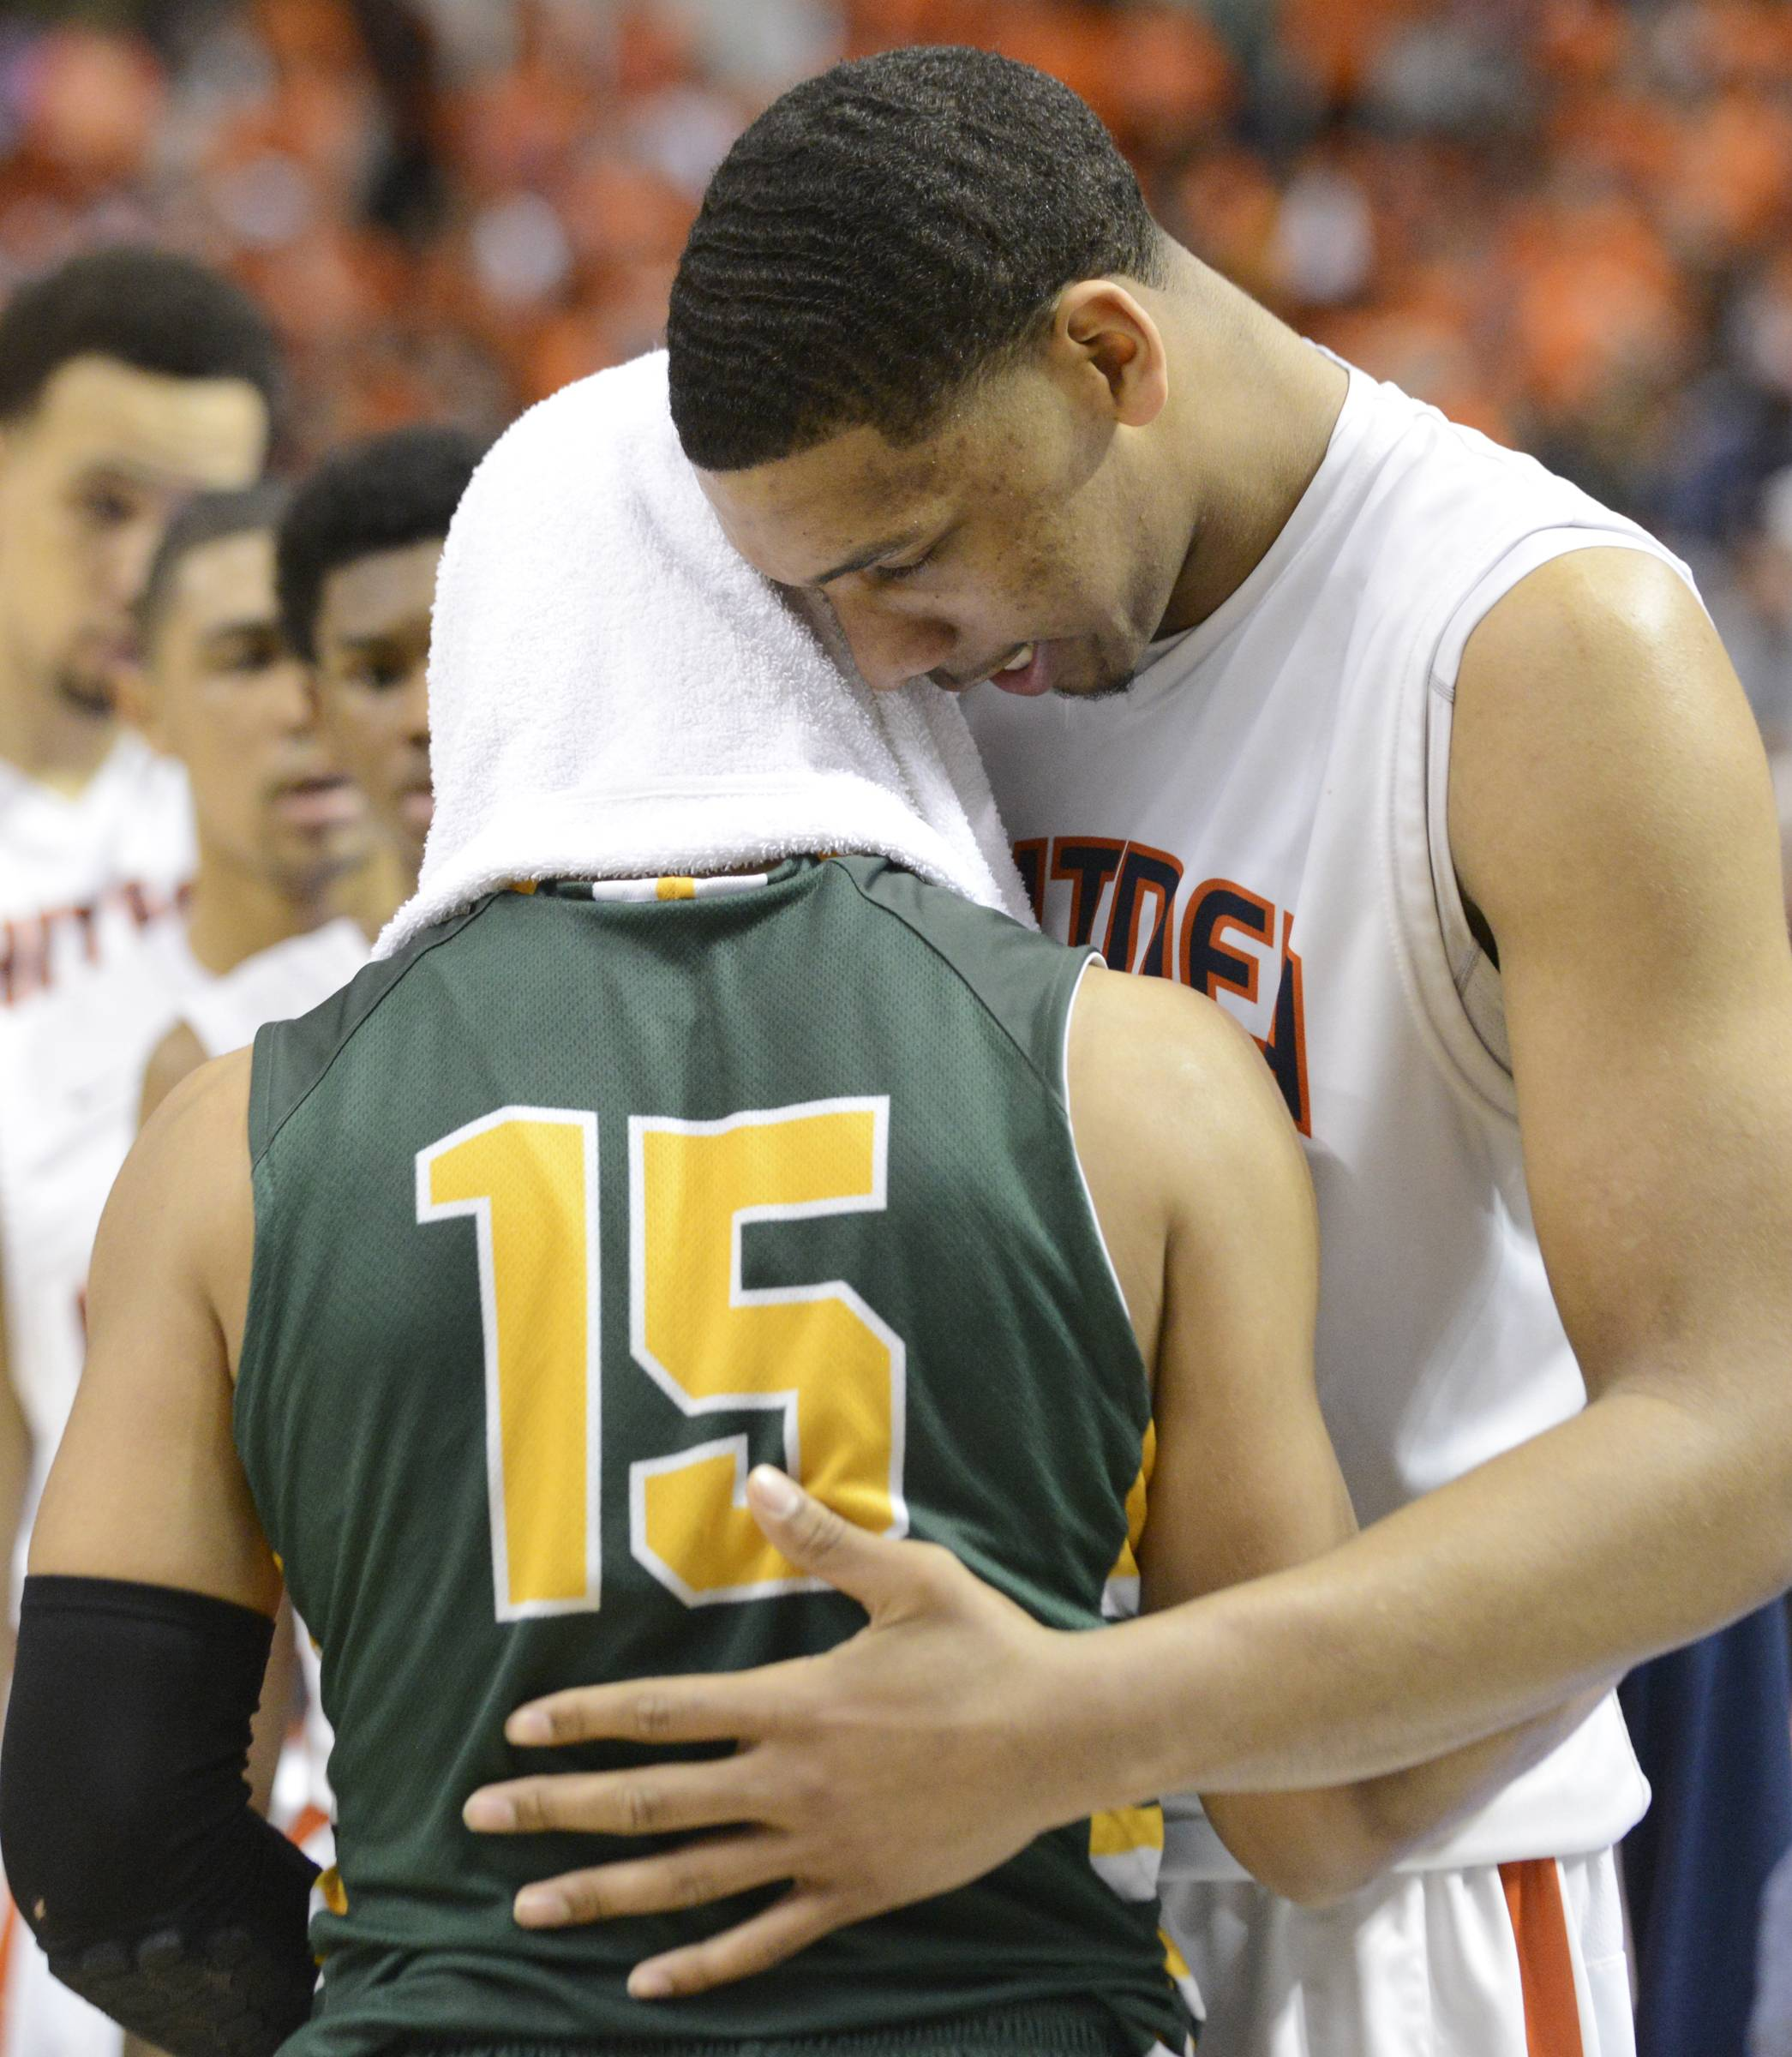 Stevenson's Jalen Brunson and Whitney Young's Jahlil Okafor, right, talk after Whitney Young's victory in the Class 4A state semifinal at Carver Arena in Peoria. Okafor, the No. 1 player in the nation, will play for Duke next season.